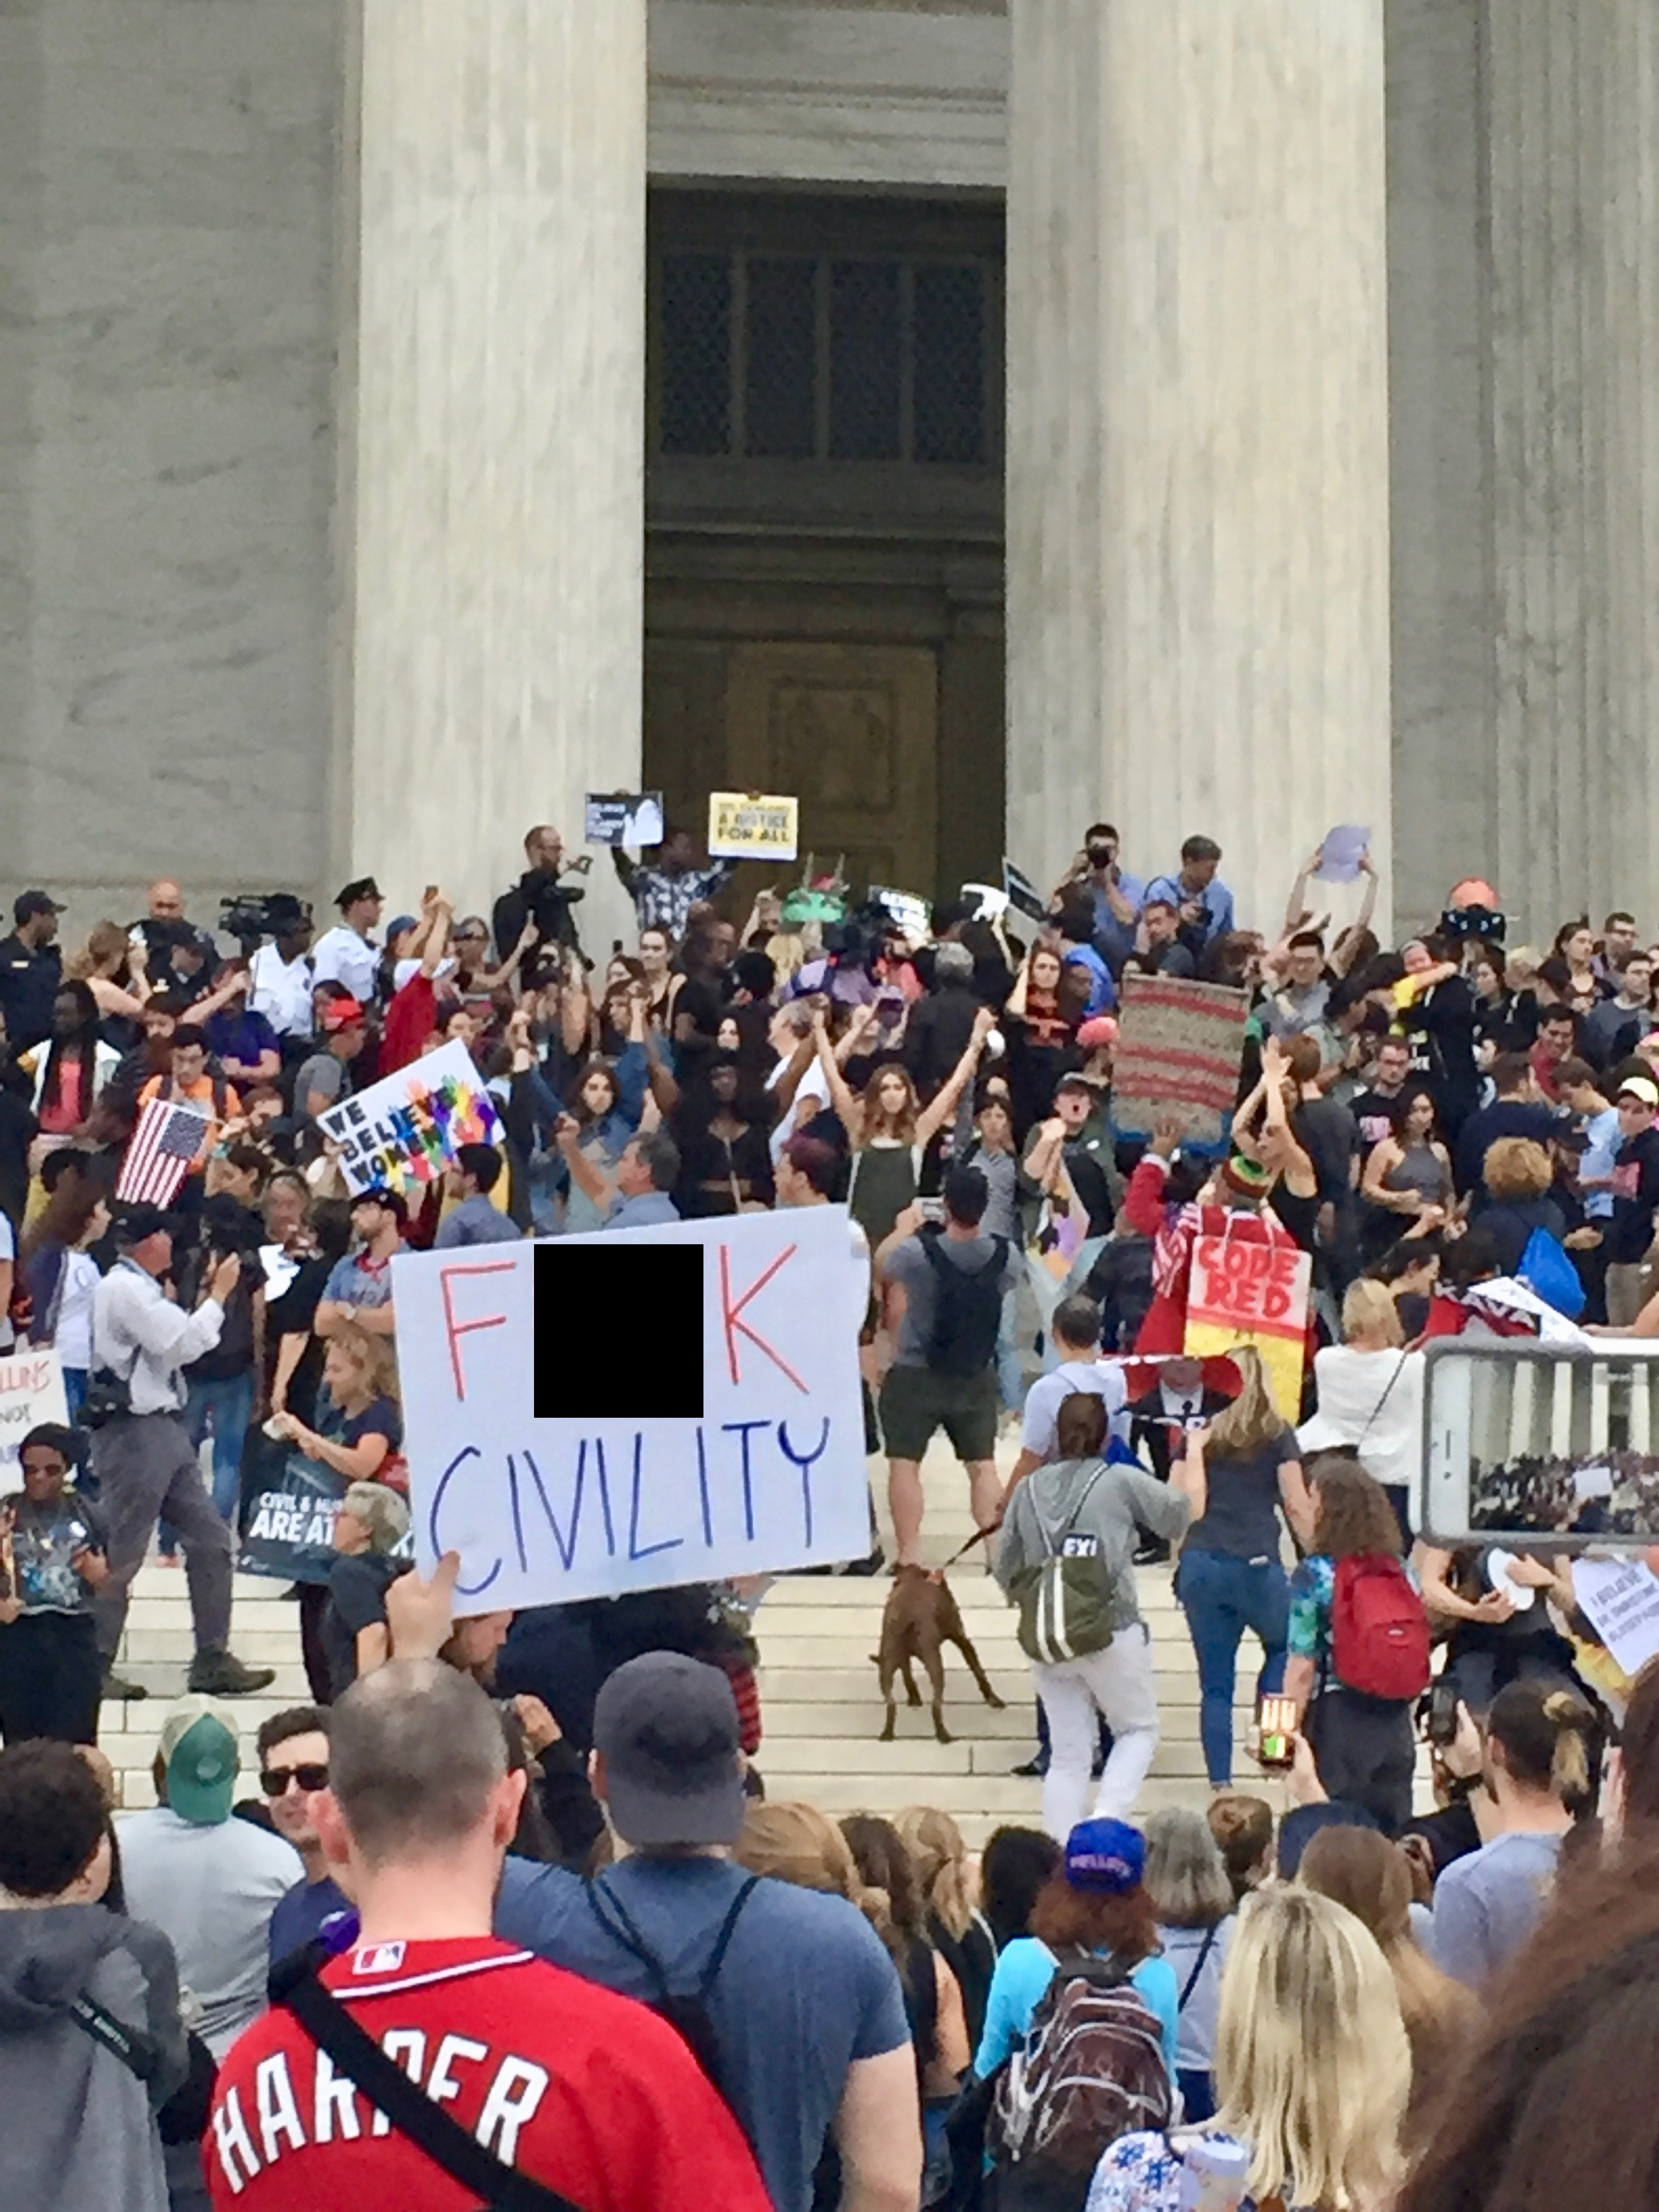 Protesters gather on the steps of the Supreme Court following the Senate confirmation of Brett Kavanaugh on Oct. 6, 2018. (Photo by TheDC/Jon Brown)